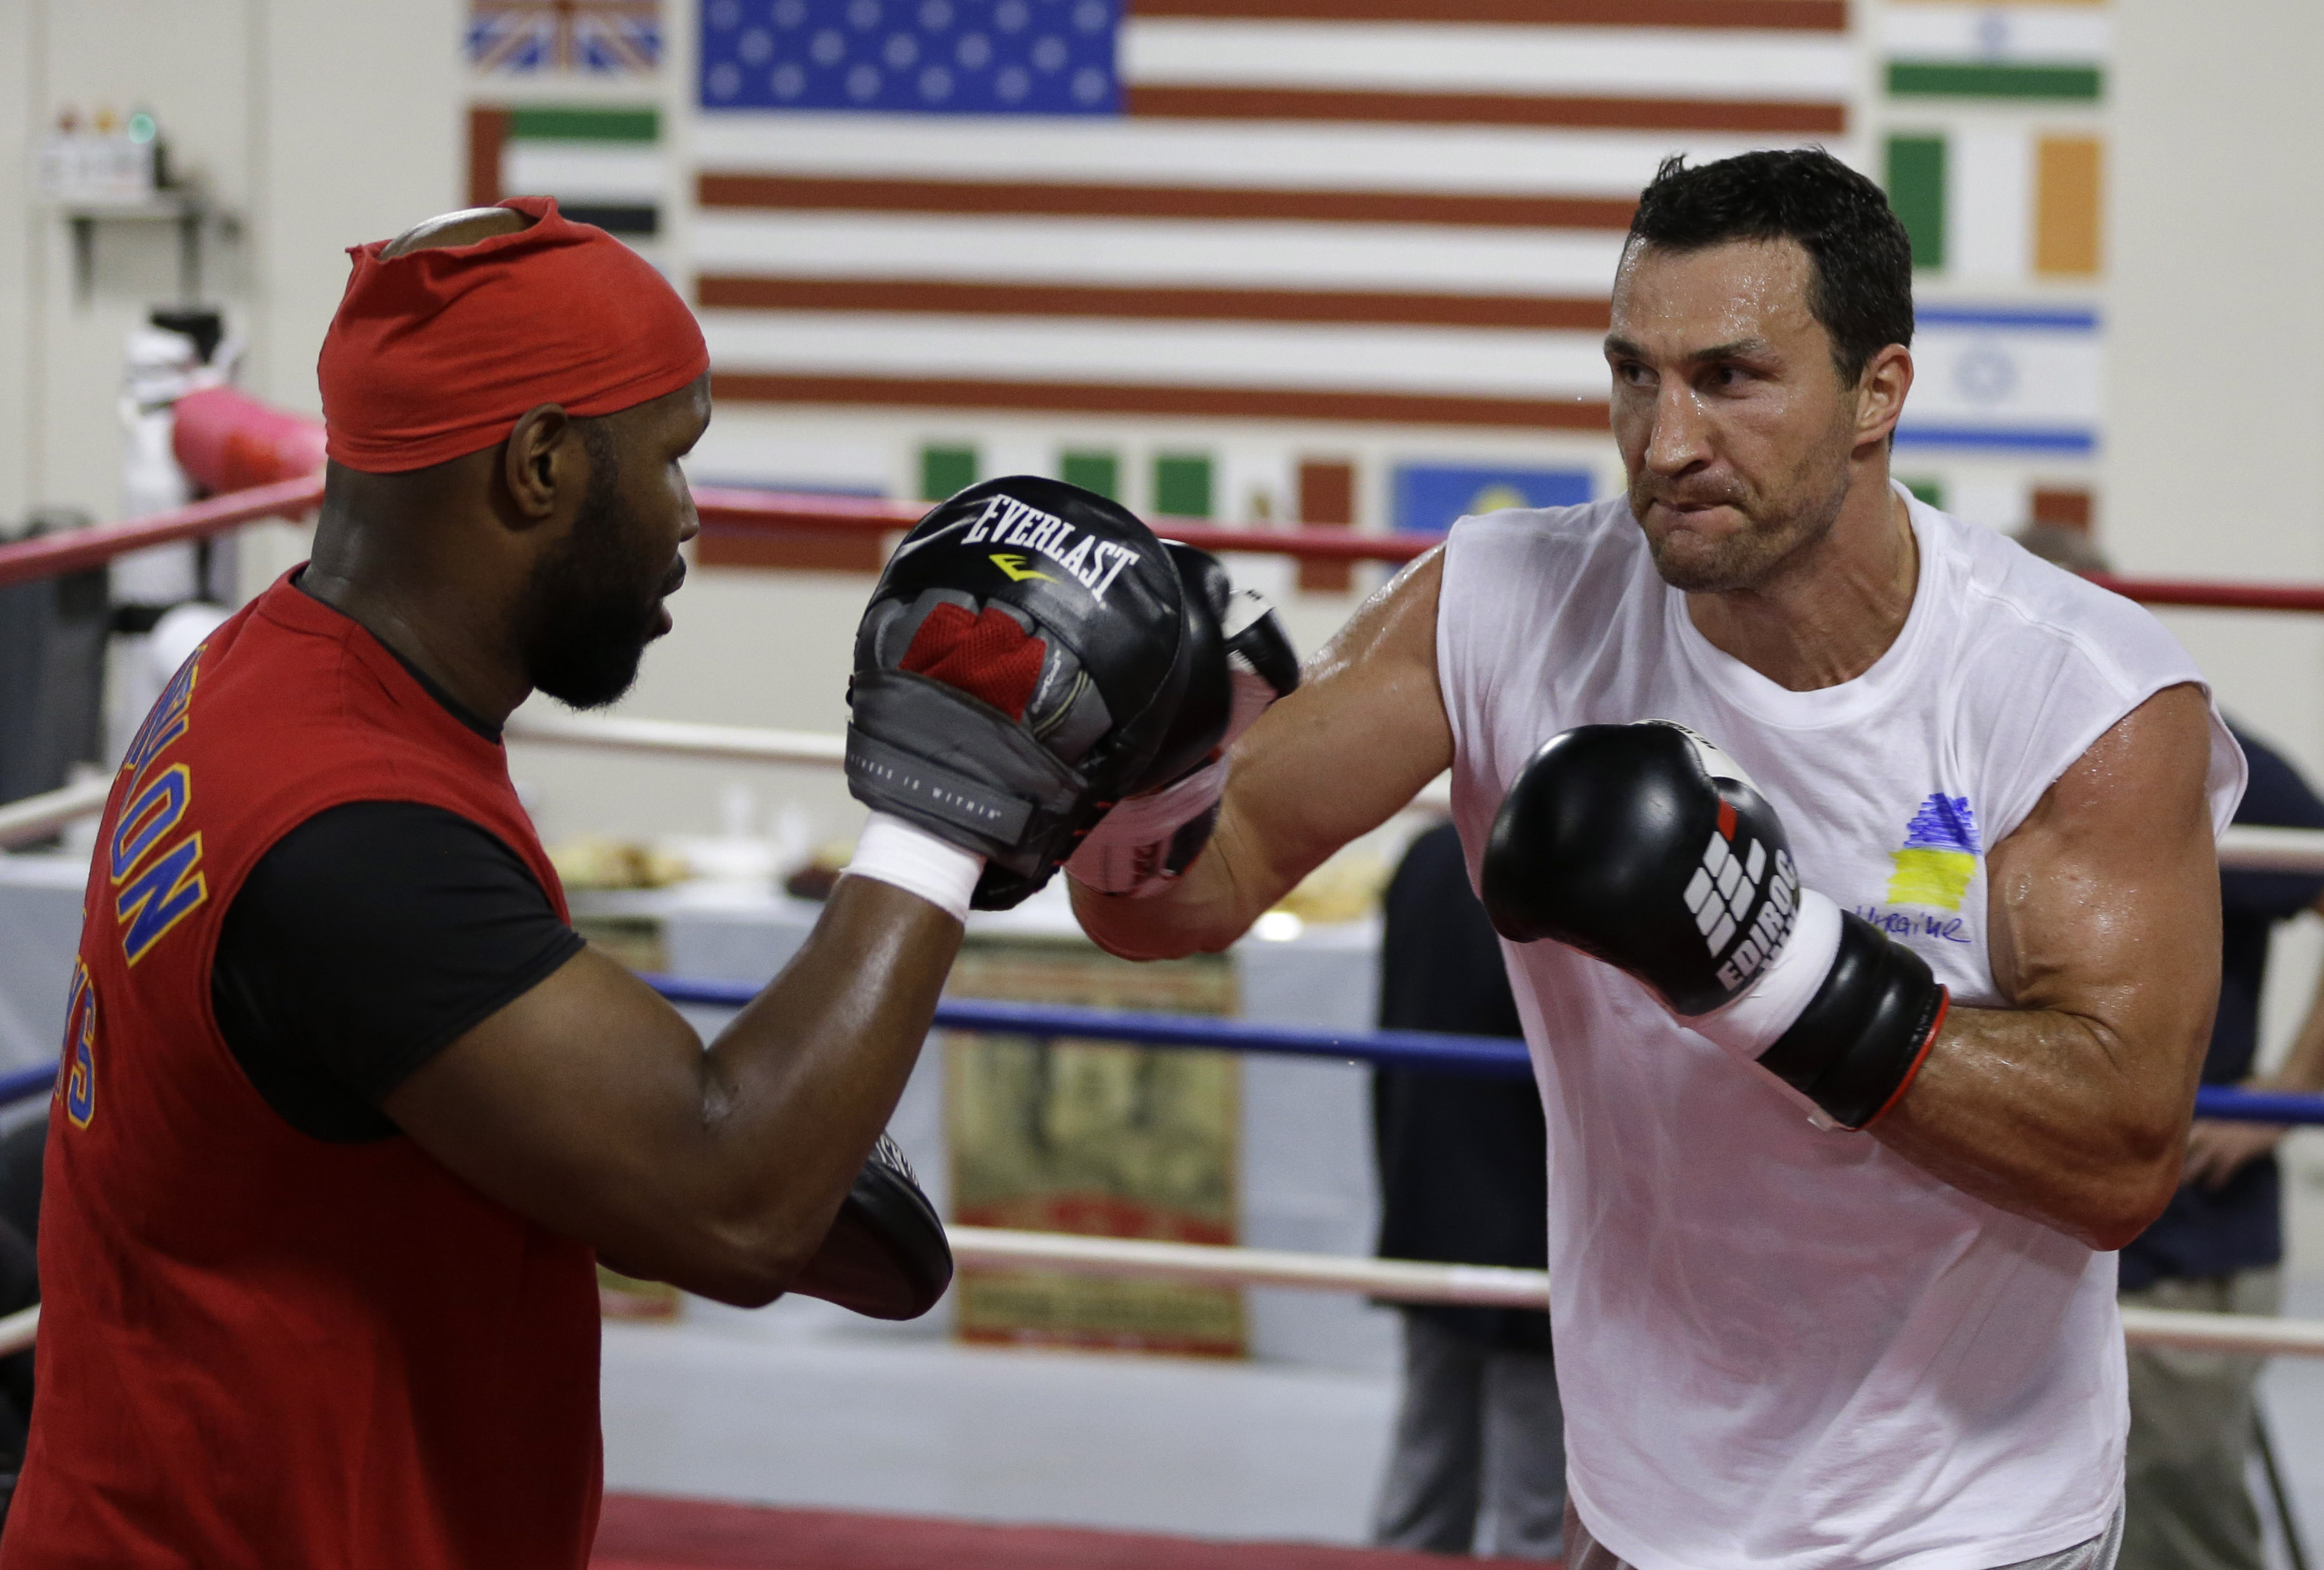 Klitschko: Try not to 'repeat mistakes of history'